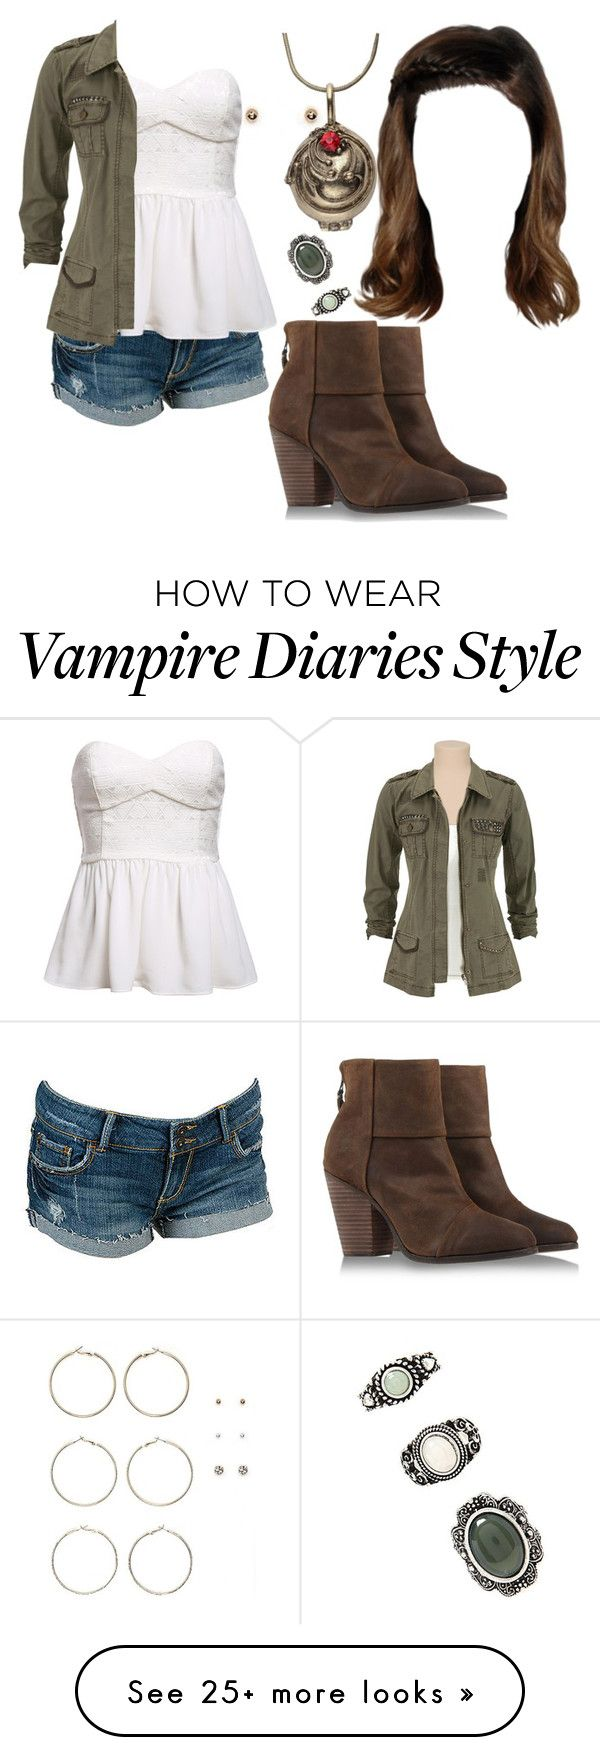 """The Vampire Diaries: Malia Gilbert [5x12]"" by grandmasfood on Polyvore featuring Forever 21 and rag & bone"